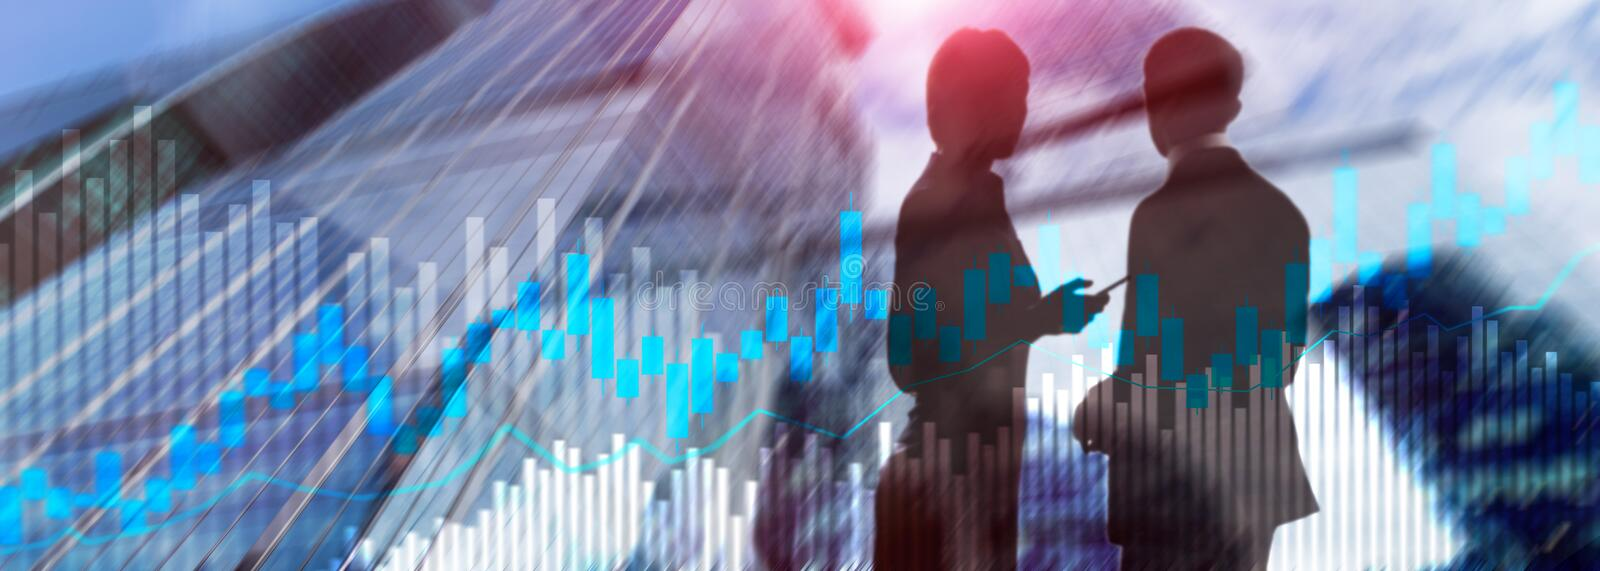 Stock trading candlestick chart and diagrams on blurred office center background.э. Stock trading candlestick chart and diagrams on blurred office center royalty free stock photos